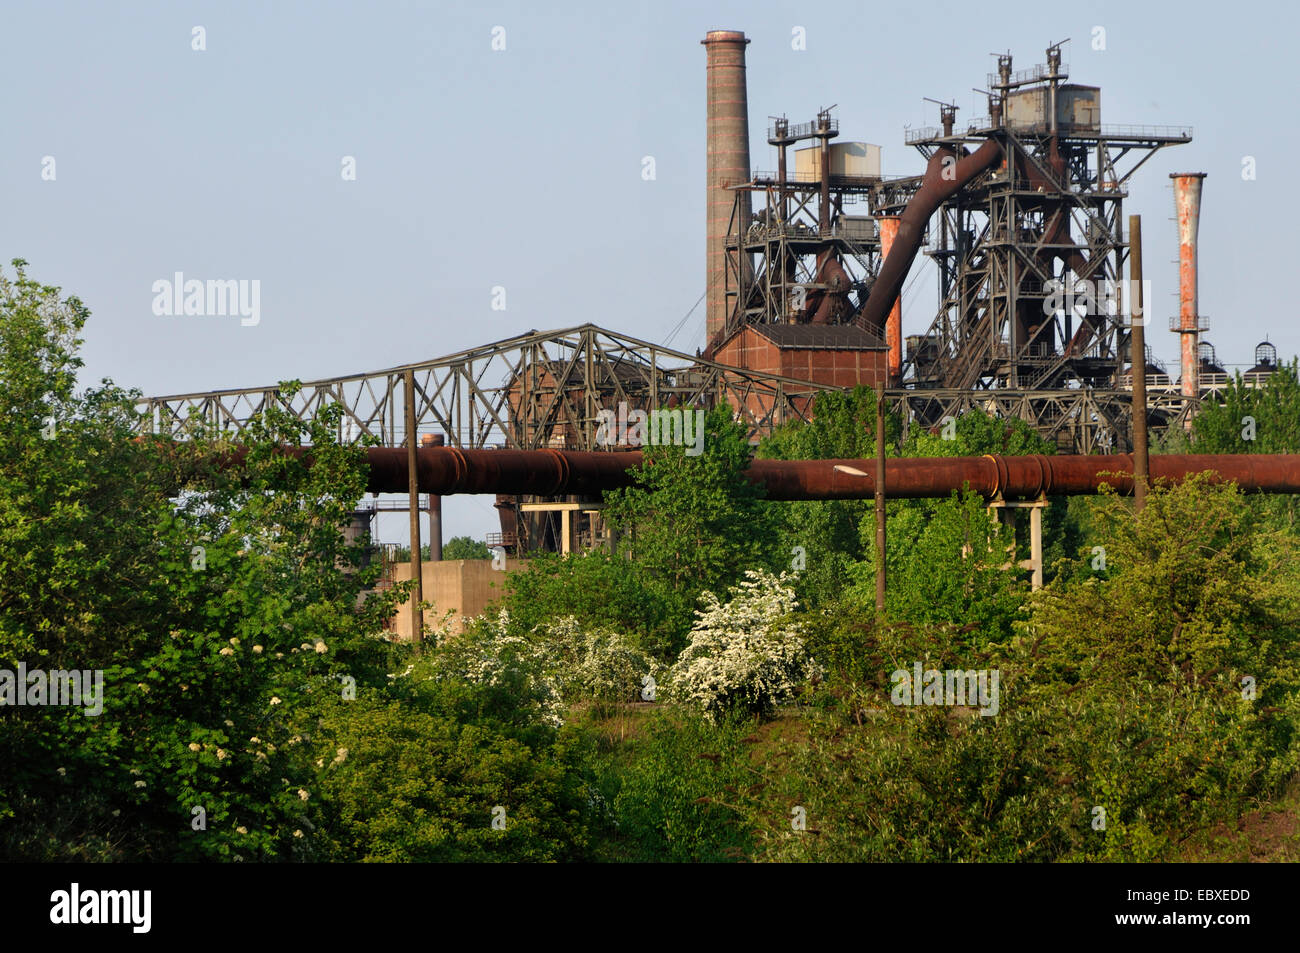 old heavy industry of Duisburg-Meiderich and industrial forest, Germany, North Rhine-Westphalia, Ruhr Area, Duisburg - Stock Image